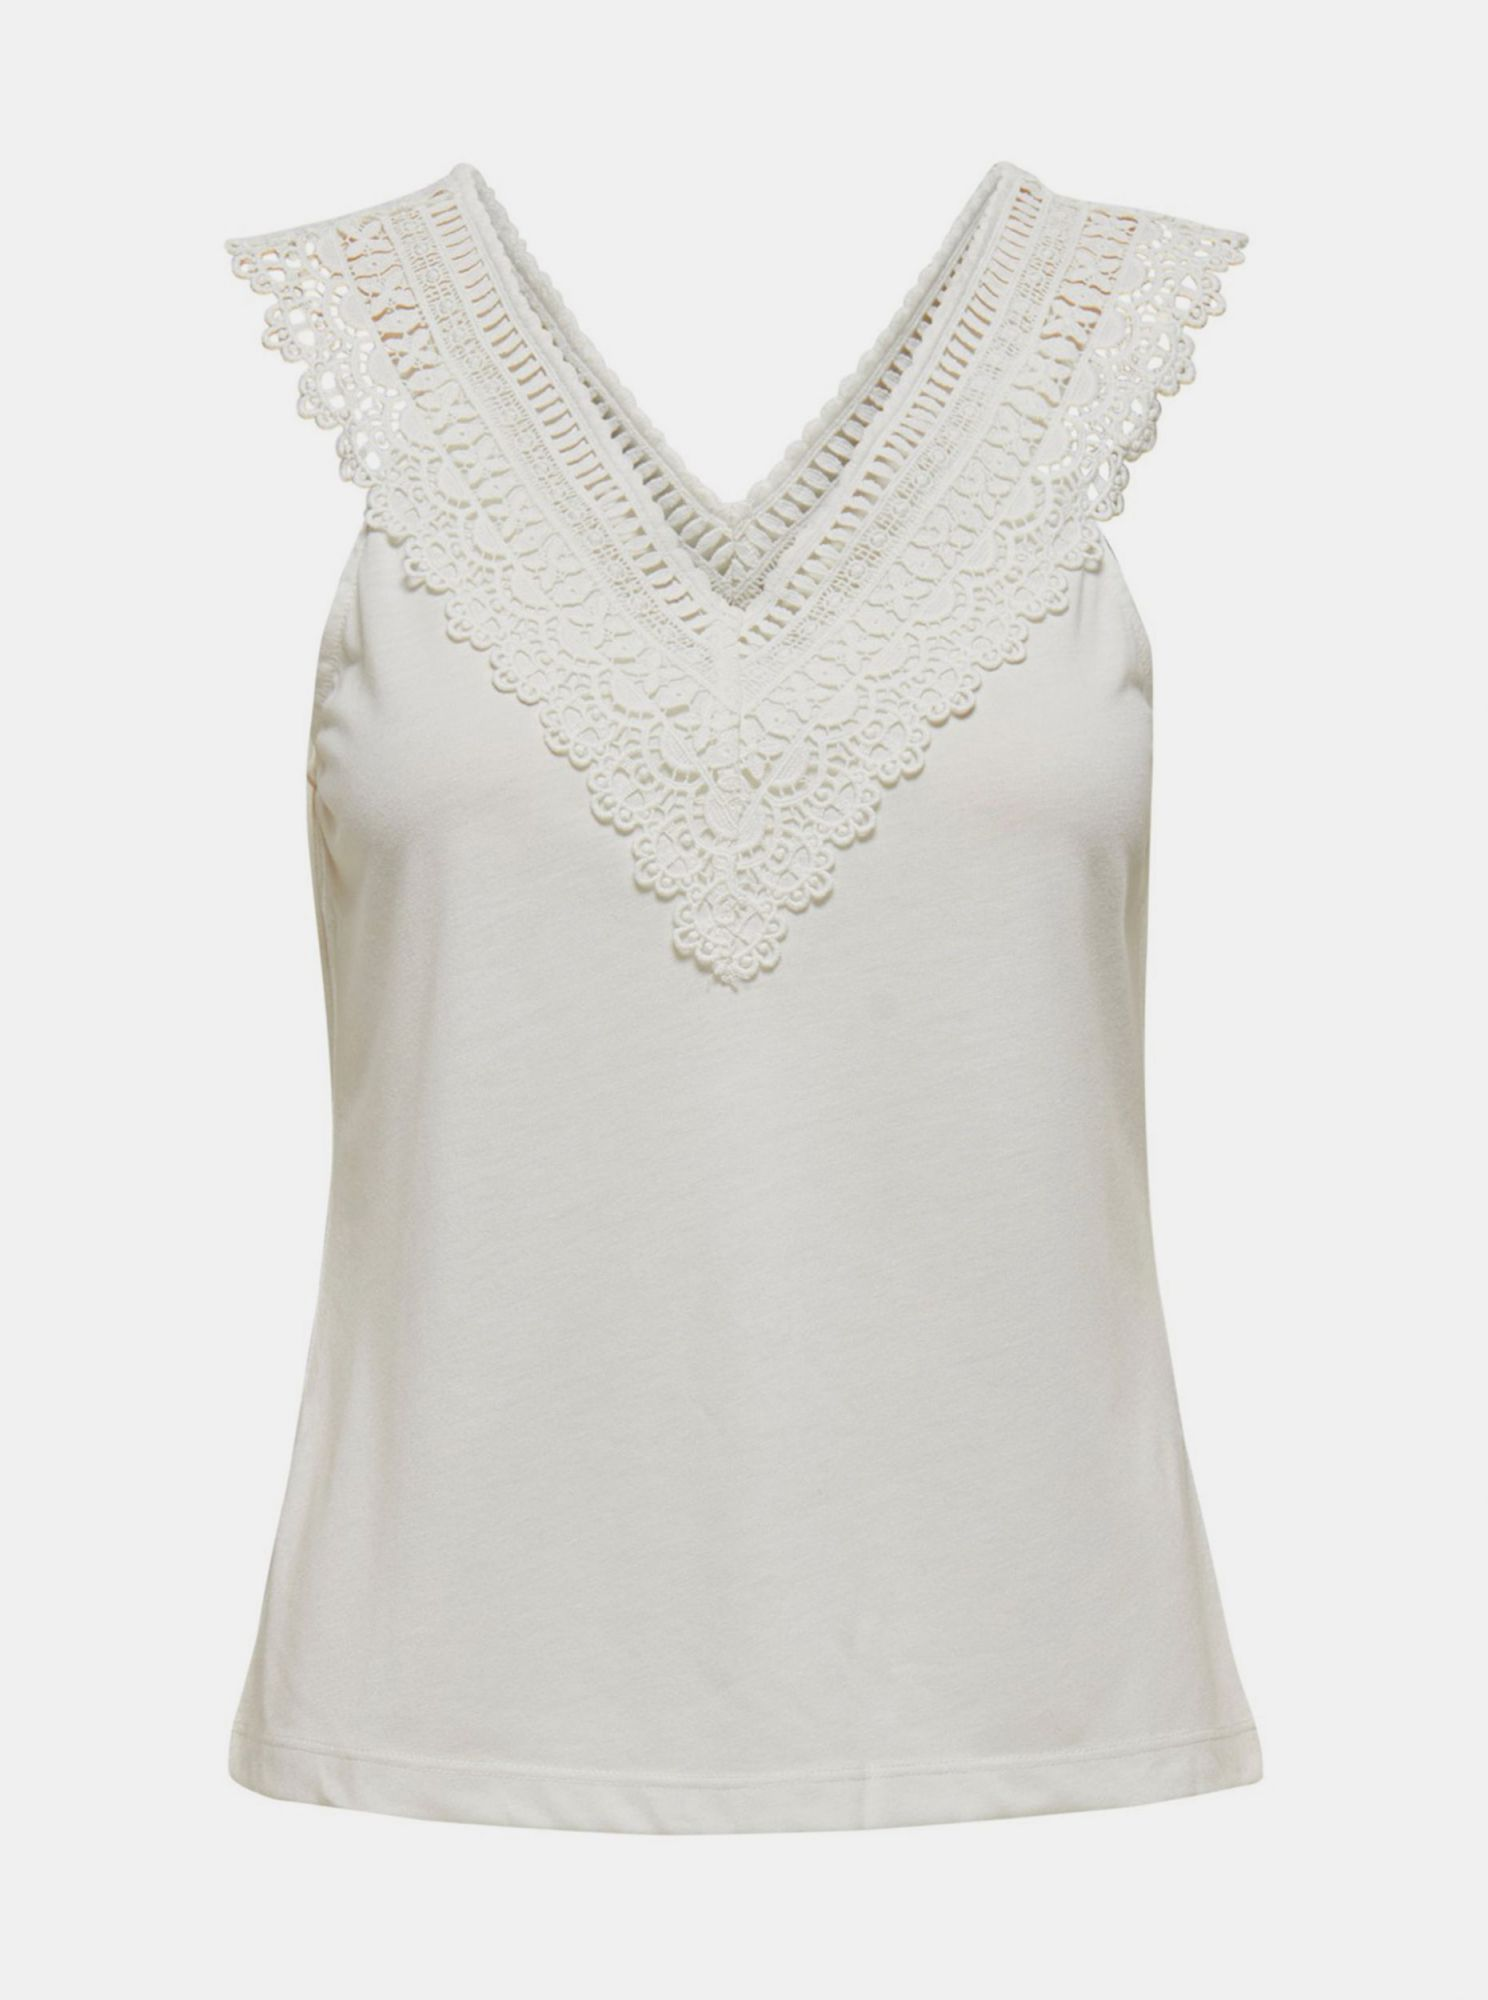 White top with lace ONLY Victoria